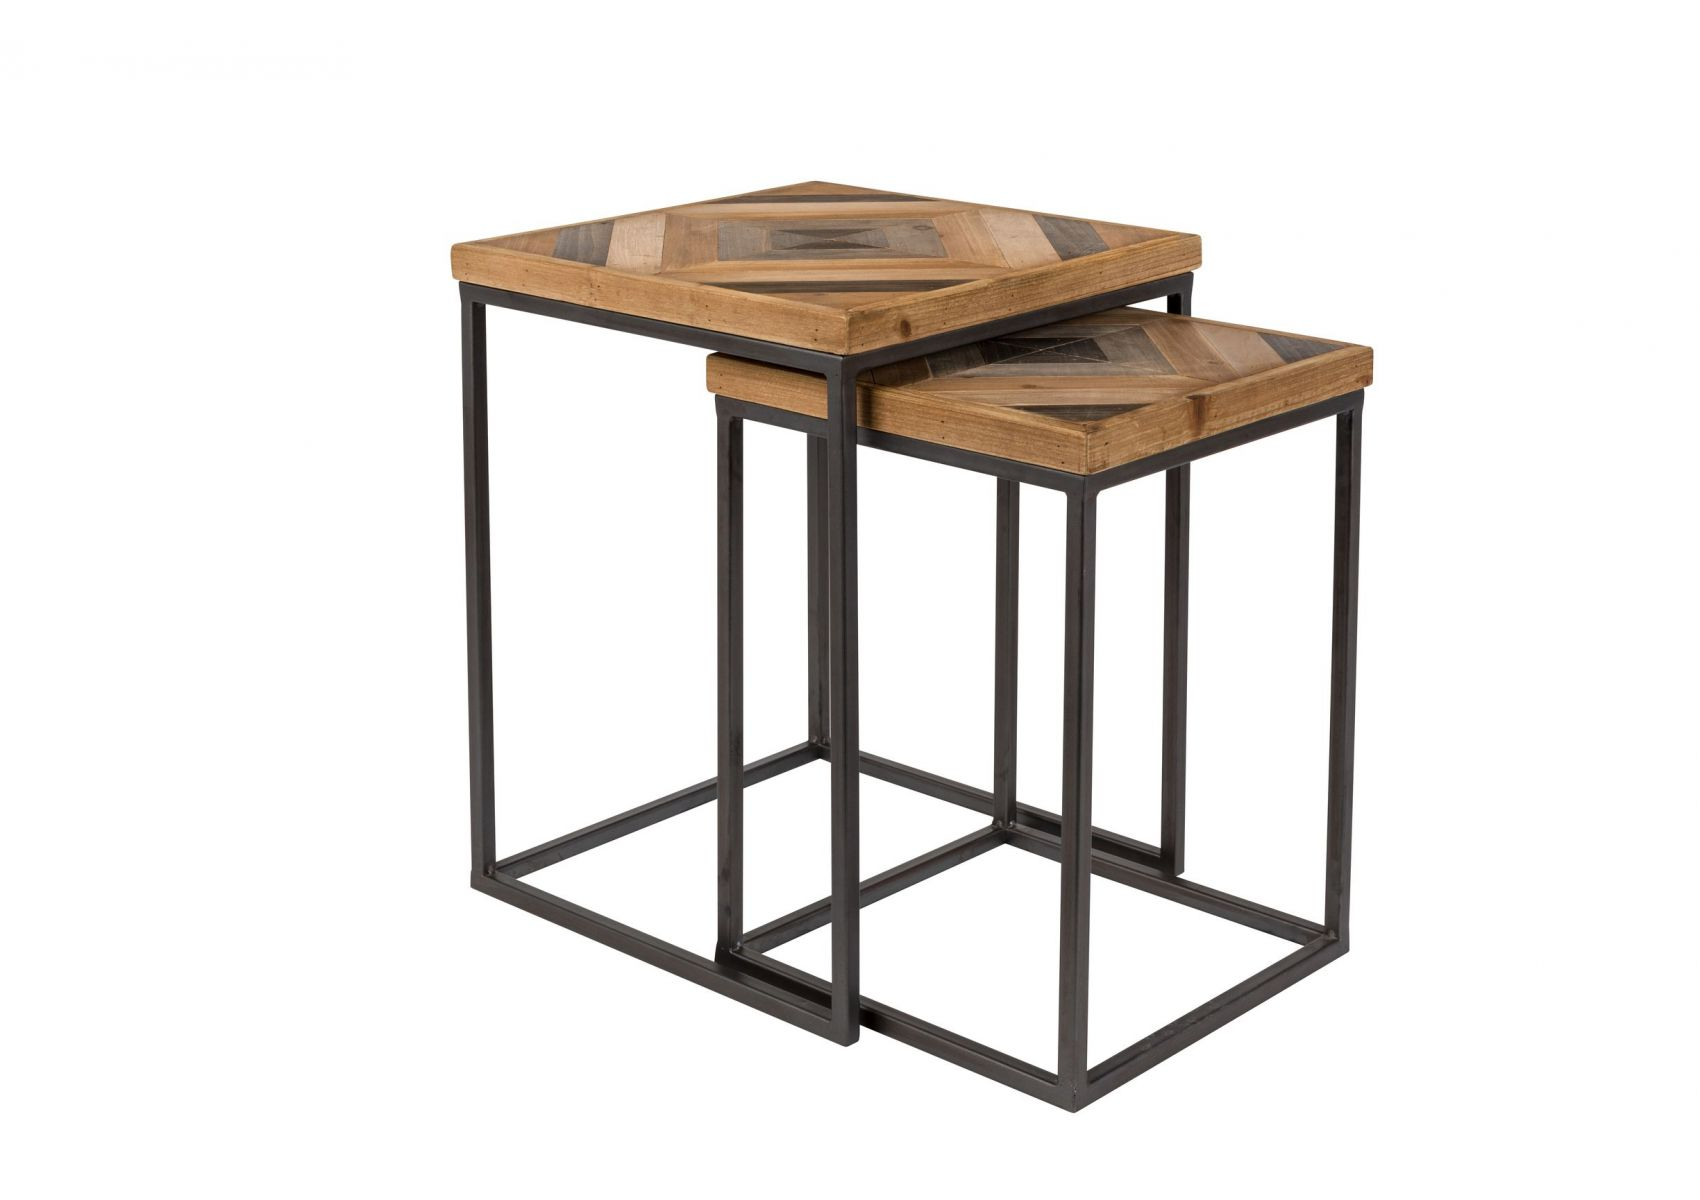 table basse gigogne industrielle bois et m tal joy boite design. Black Bedroom Furniture Sets. Home Design Ideas